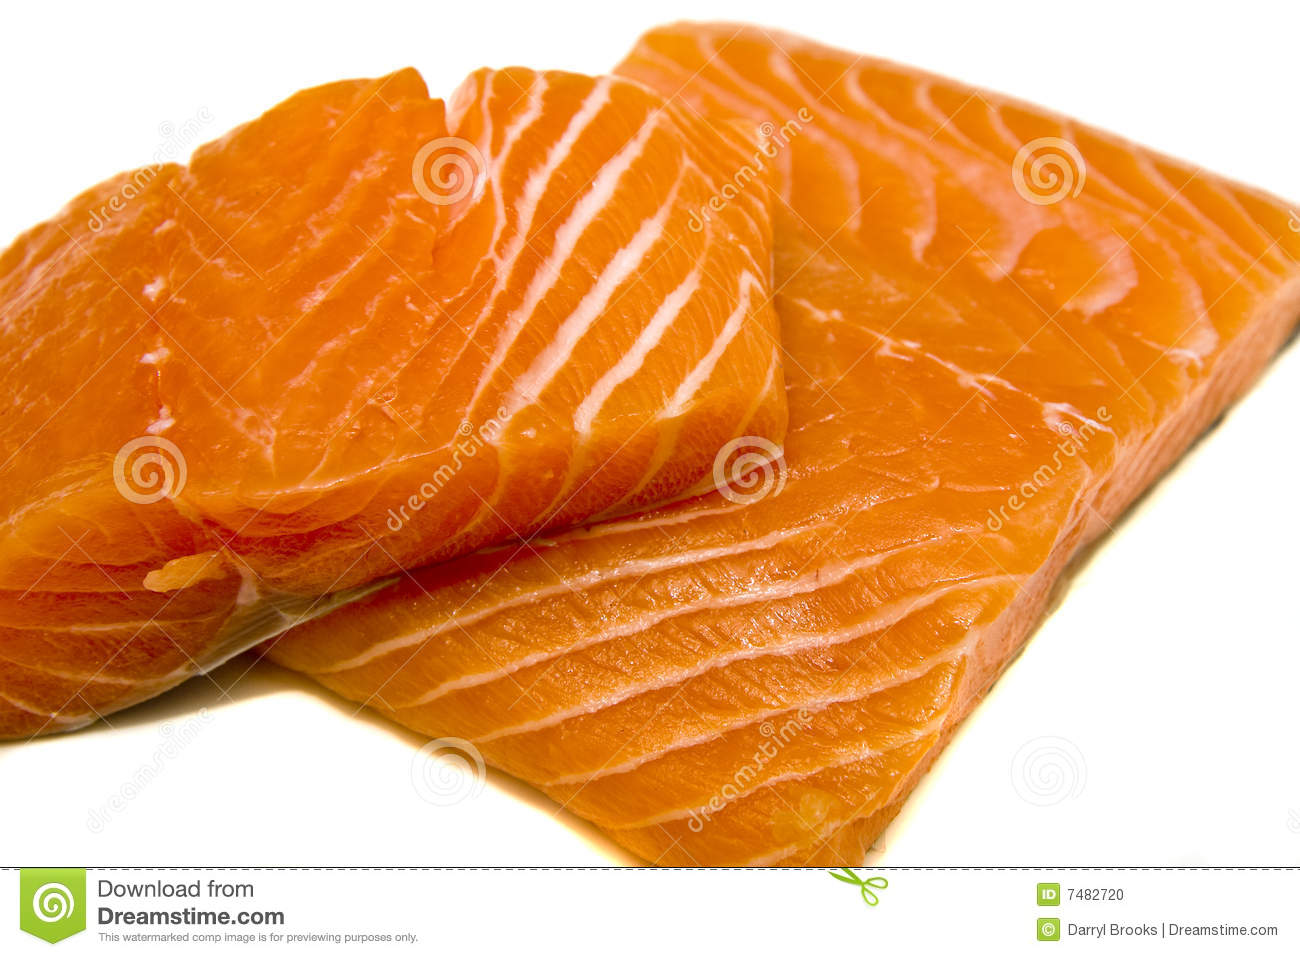 how to cook frozen salmon fillets with skin